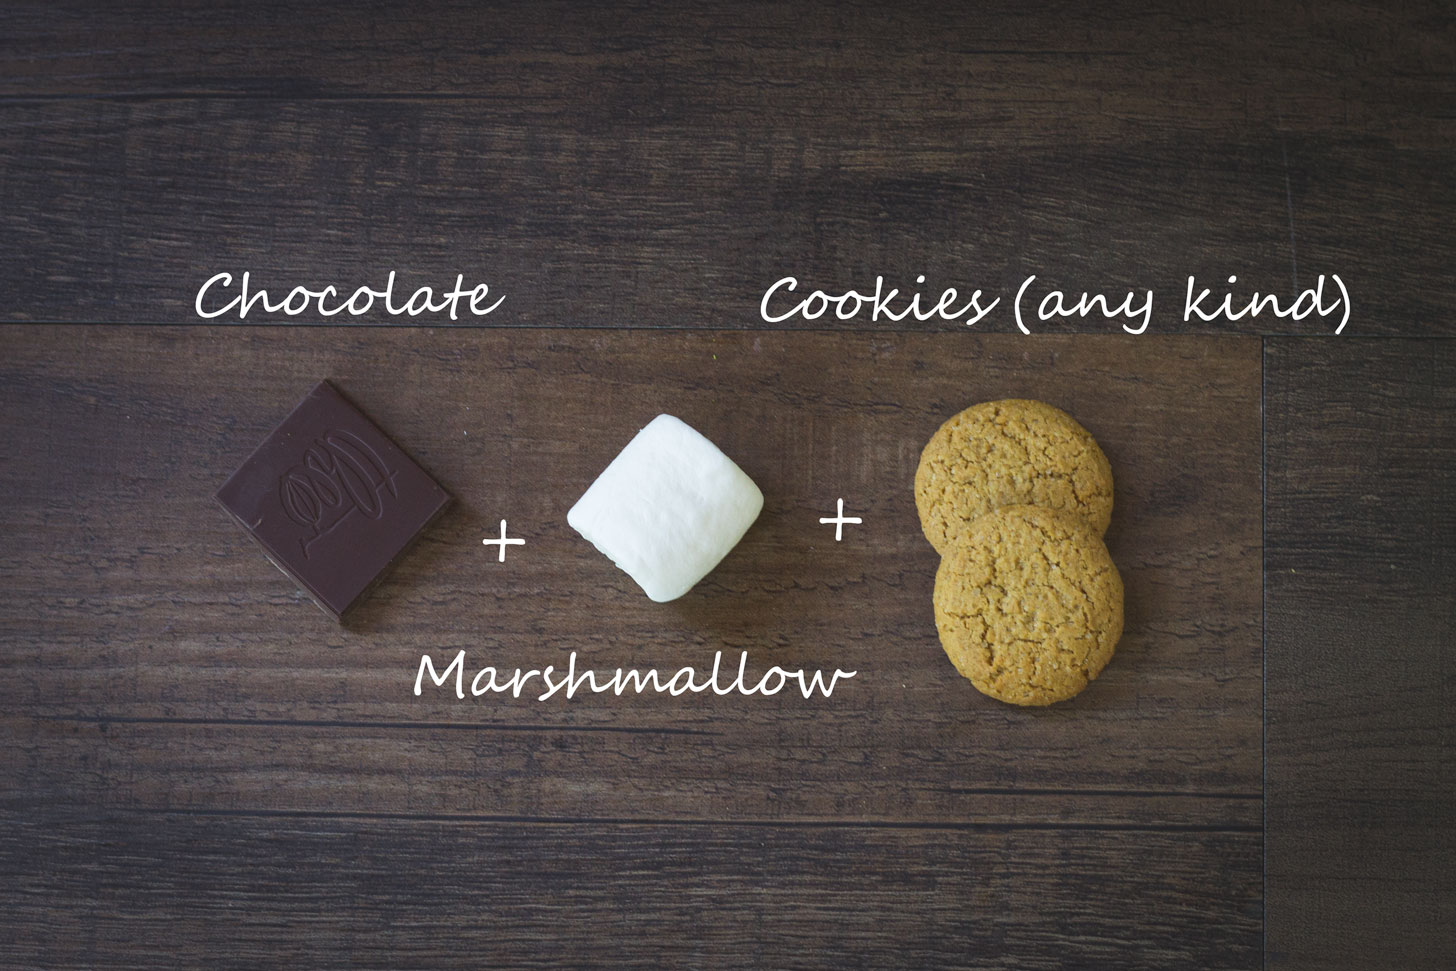 Vegan chocolate, marshmallow, and cookies.